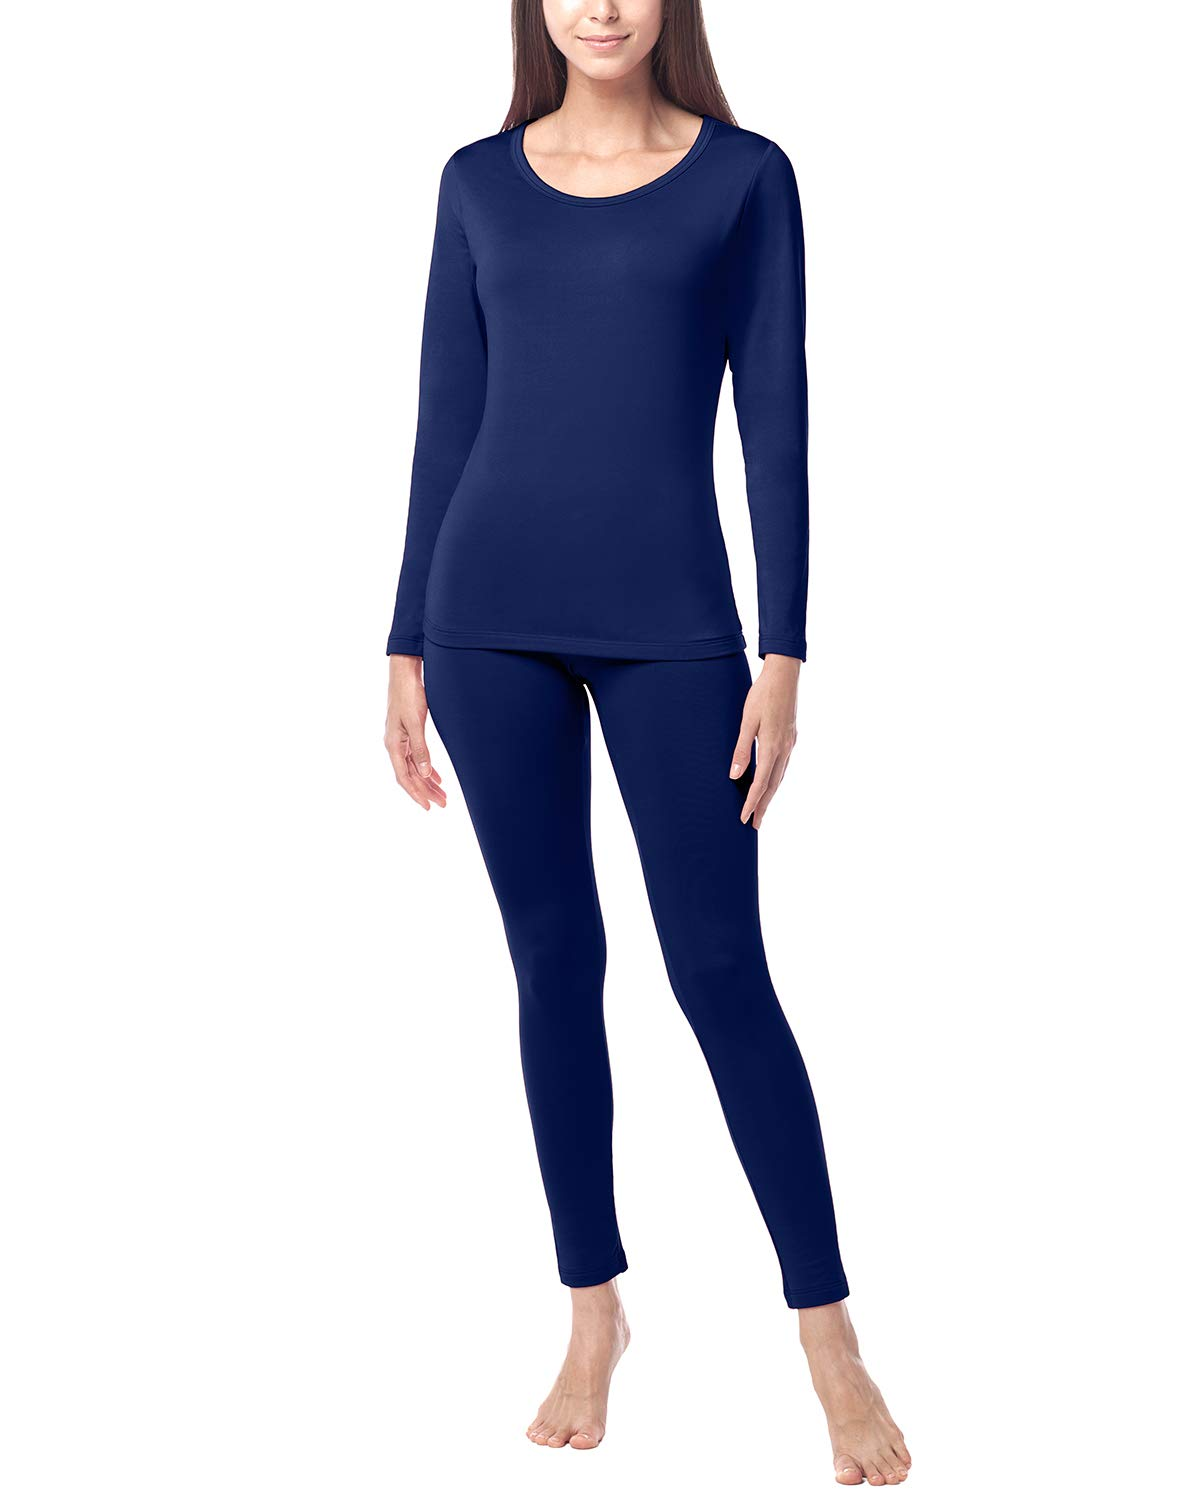 LAPASA Women's Lightweight Thermal Underwear Long John Set Fleece Lined Base Layer Top and Bottom L17 (XX-Large, Navy) by LAPASA